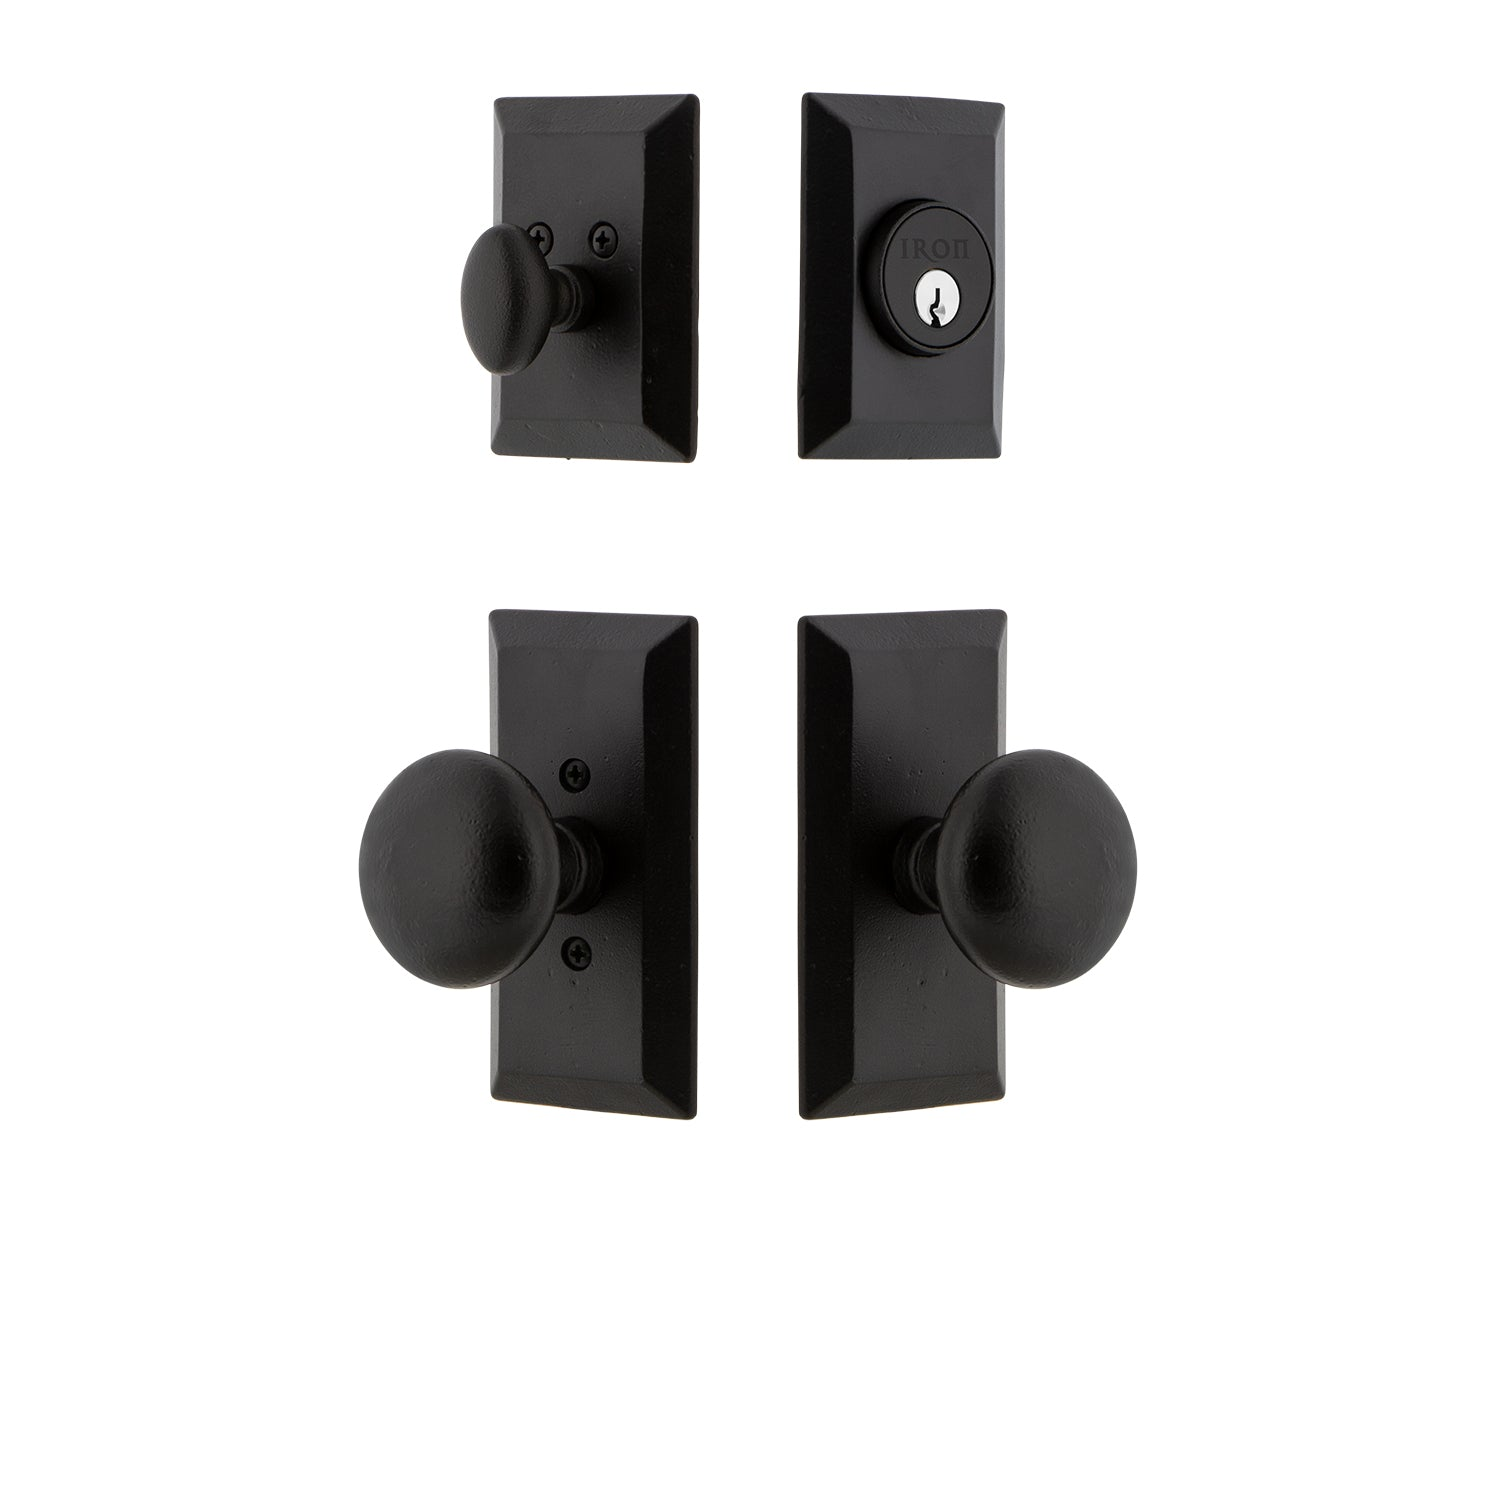 Vale Short Plate Entry Set with Keep Knob